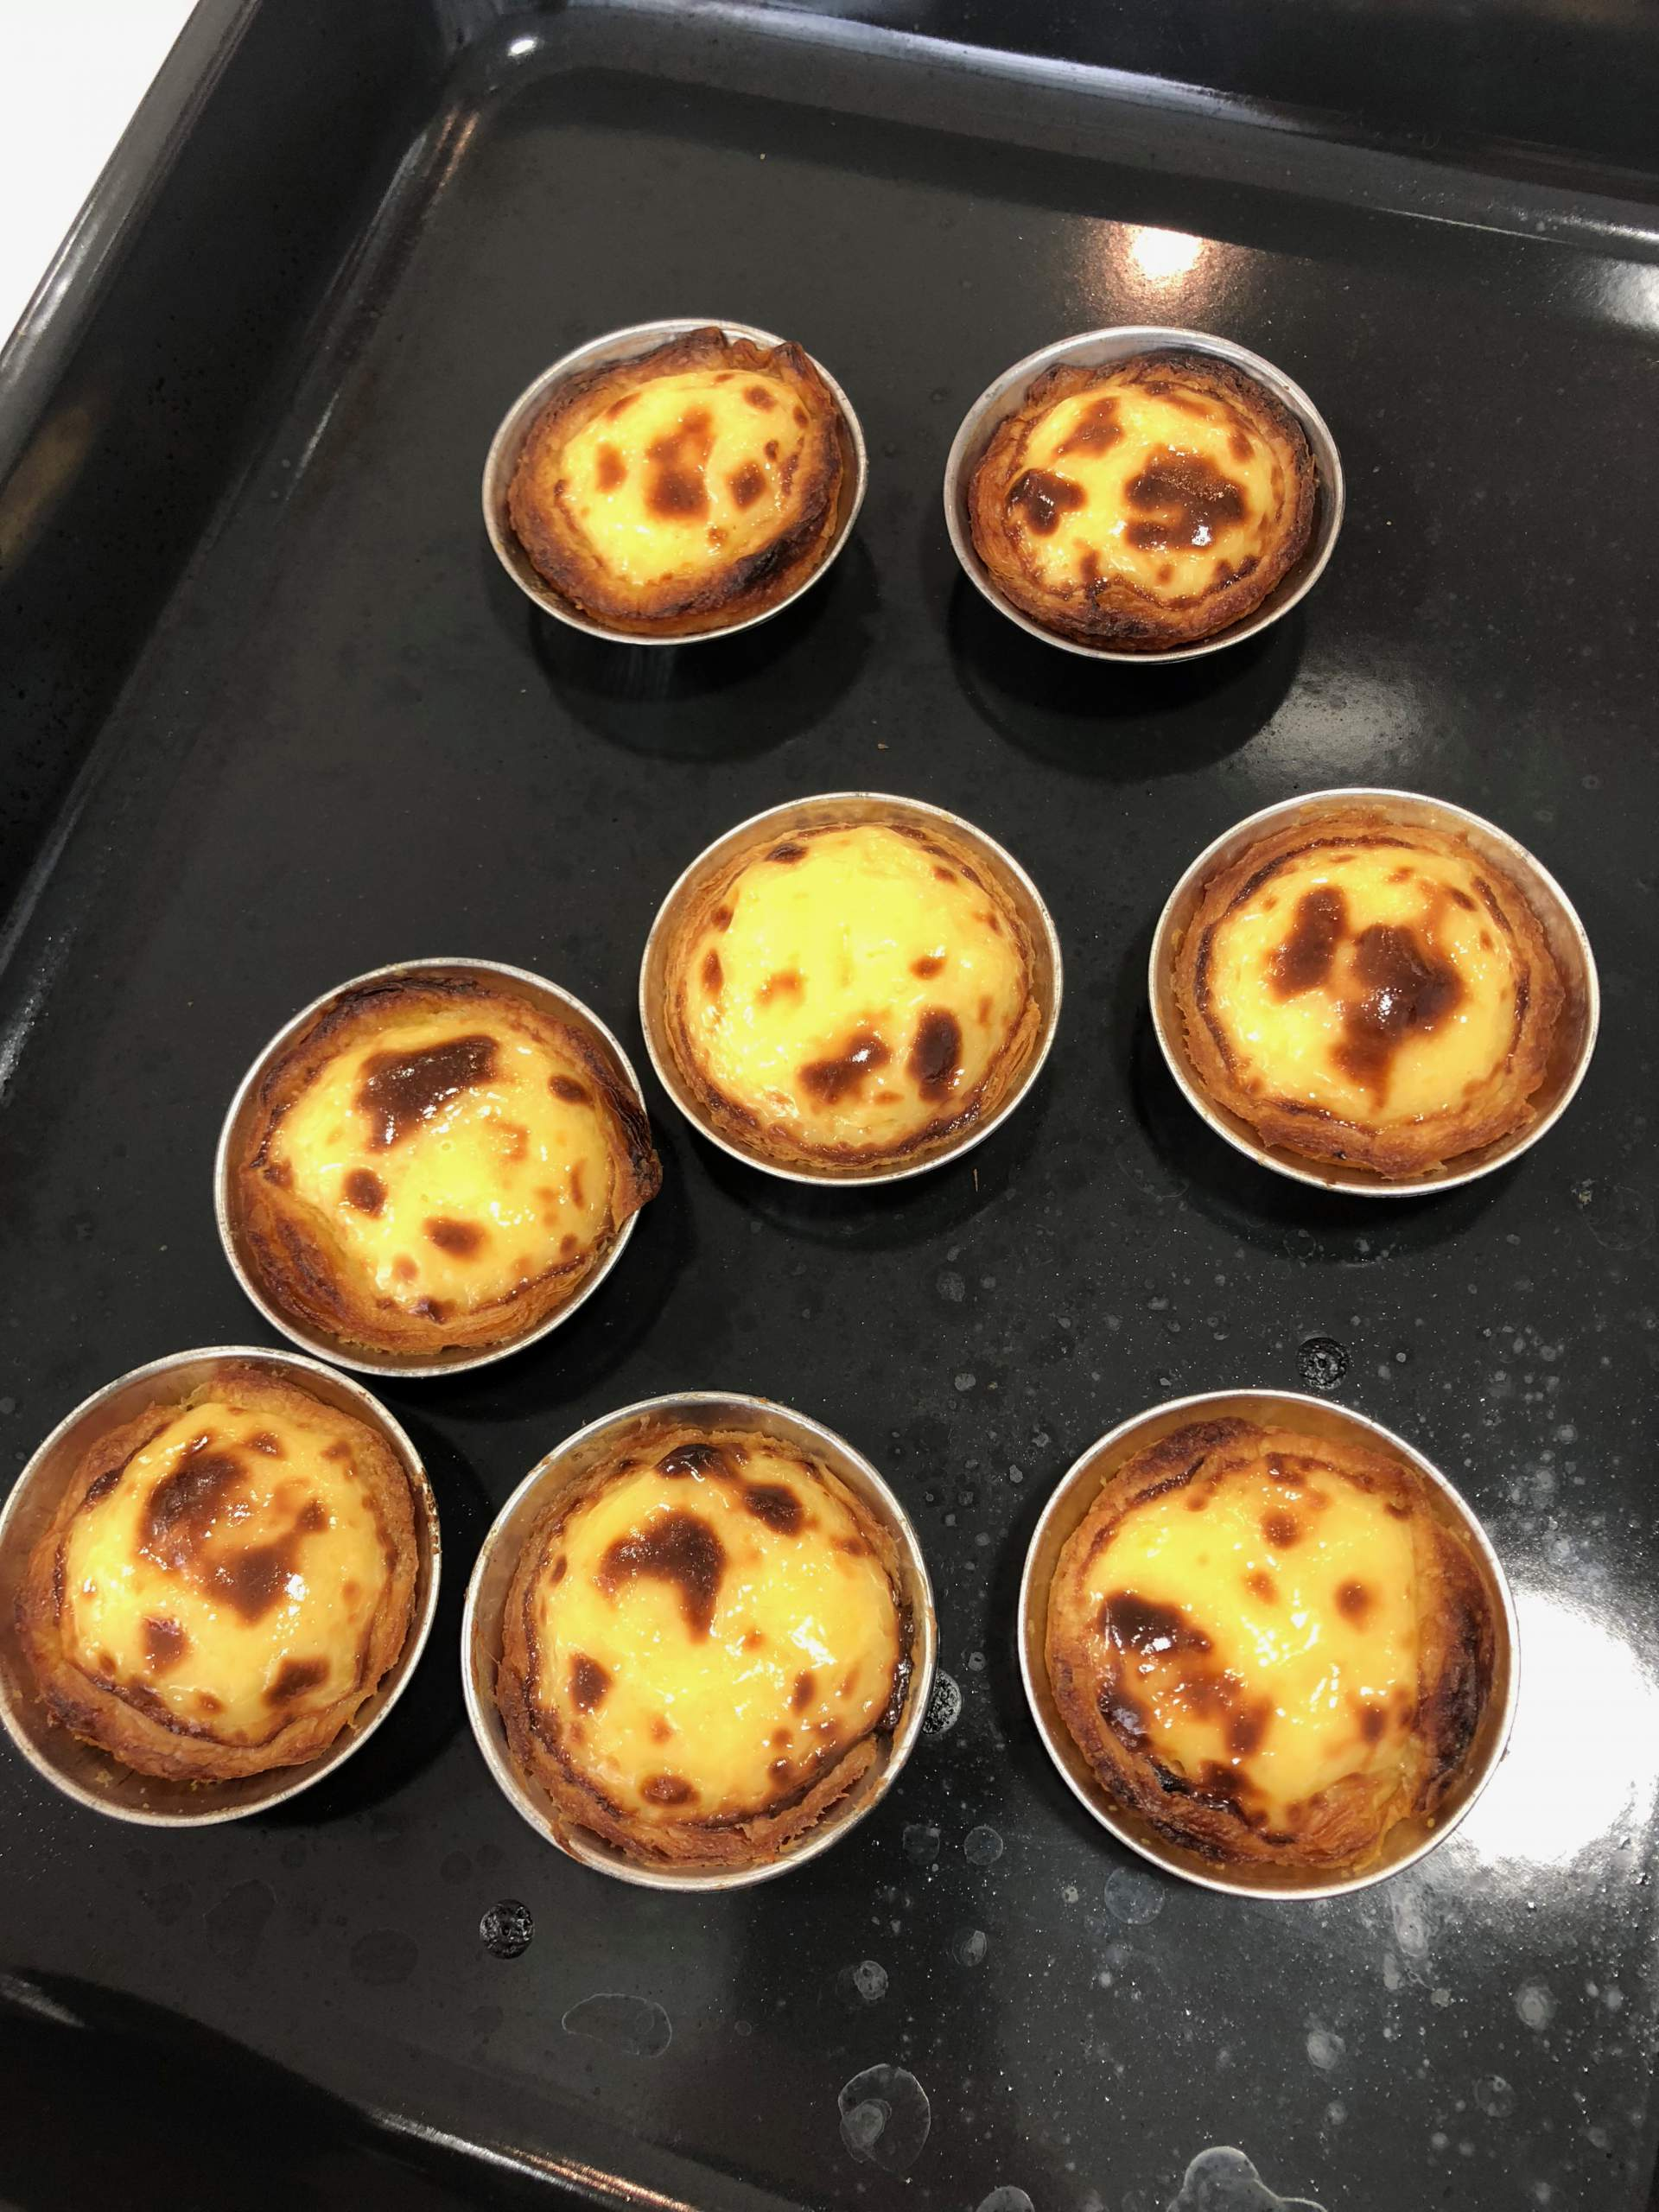 A tray of freshly baked pasteis de nata at Lisbon Cooking Academy with a special trick